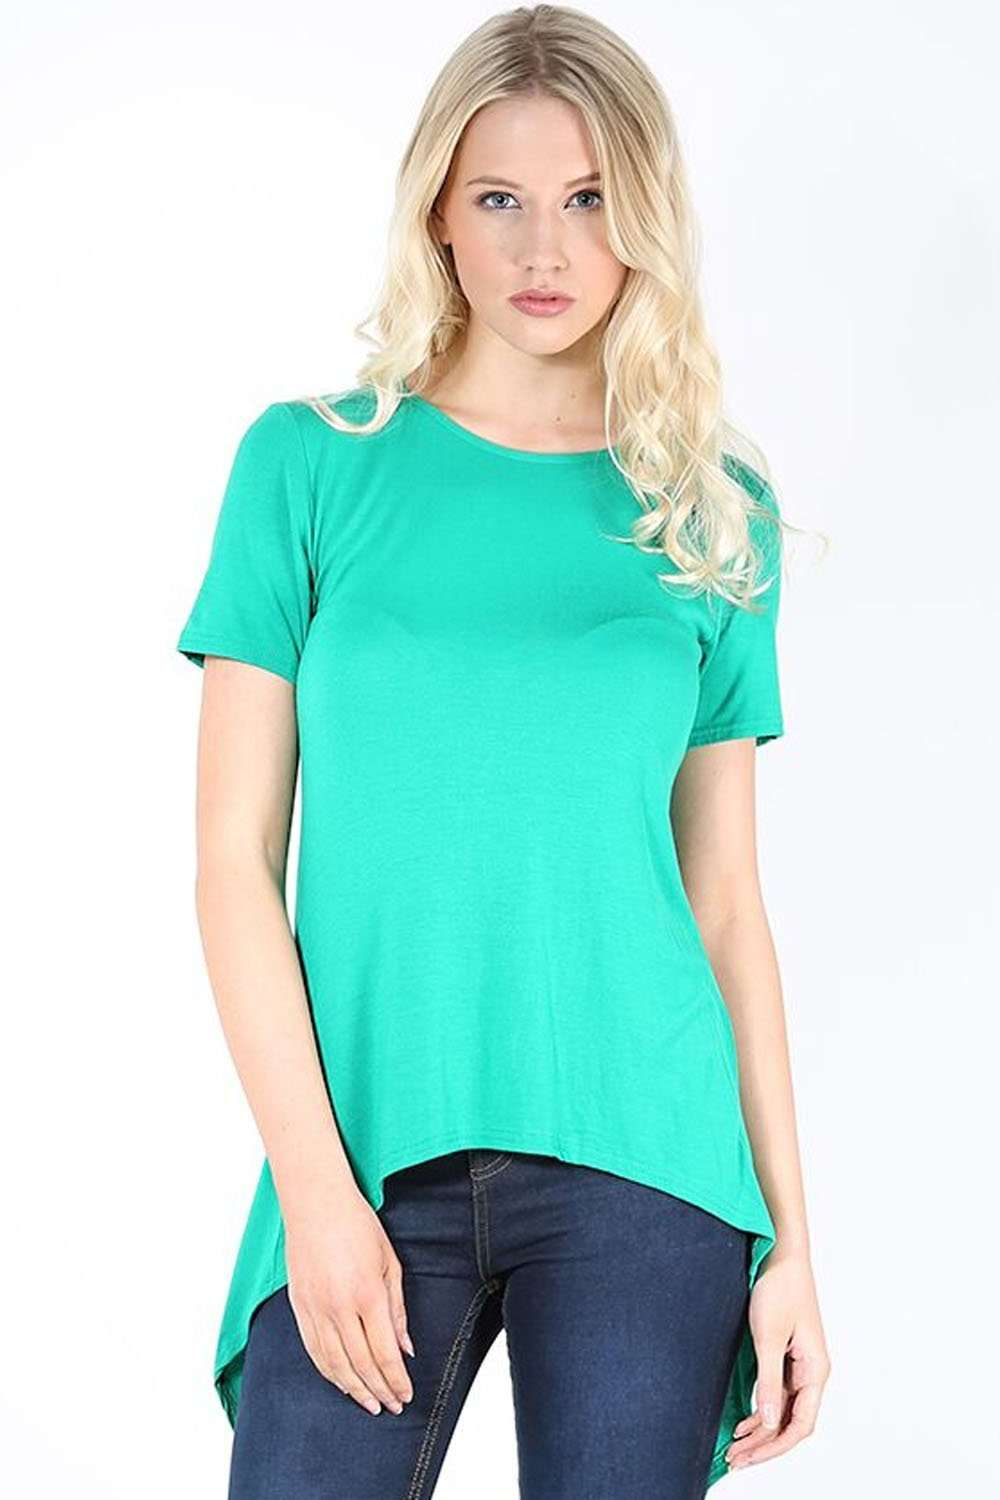 Alarna Open Back Short Sleeve Tshirt - bejealous-com